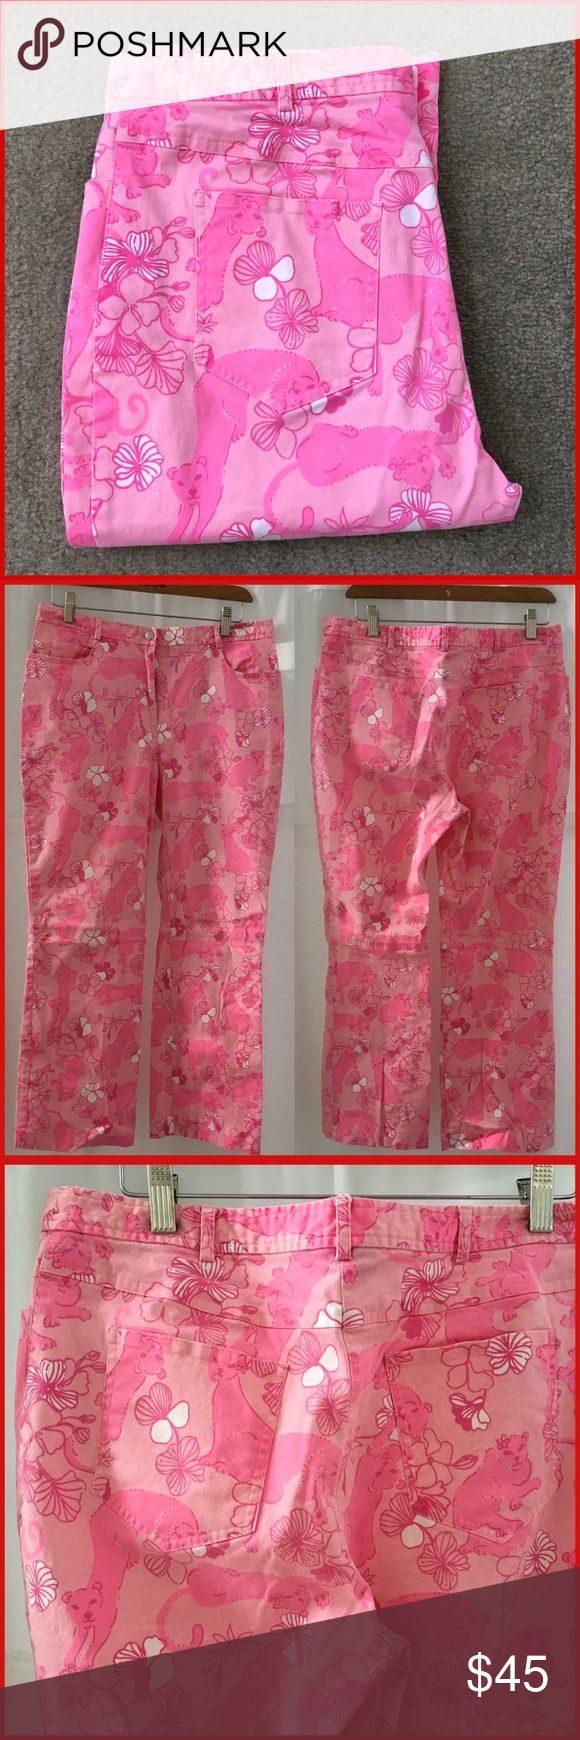 Lily Pulitzer pink panther pants jeans Previously worn but in good condition. I did find a brown spot on the back of a leg. Please see photo.  Waistband is 16.25 inches across the front front rise is 11 inches and inseamis 27 inches. 95% cotton 5% spandex size is 12 Lilly Pulitzer Pants Ankle & Cropped